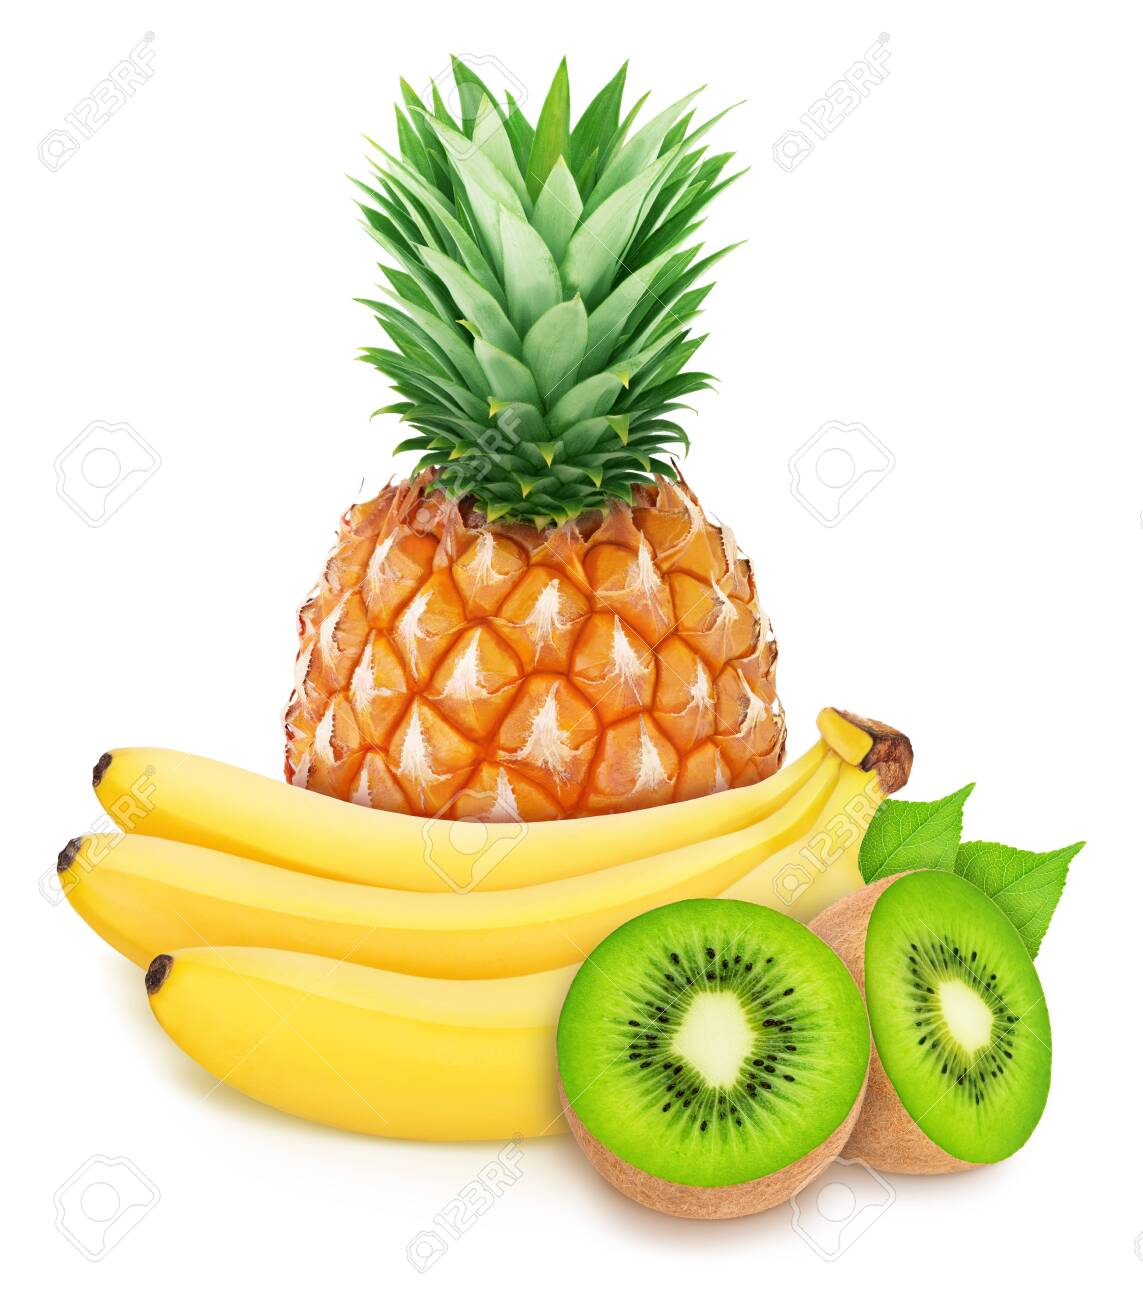 Ccomposition with tropoc fruits: banana, kiwi and pineapple isolated on a white background. - 131064105